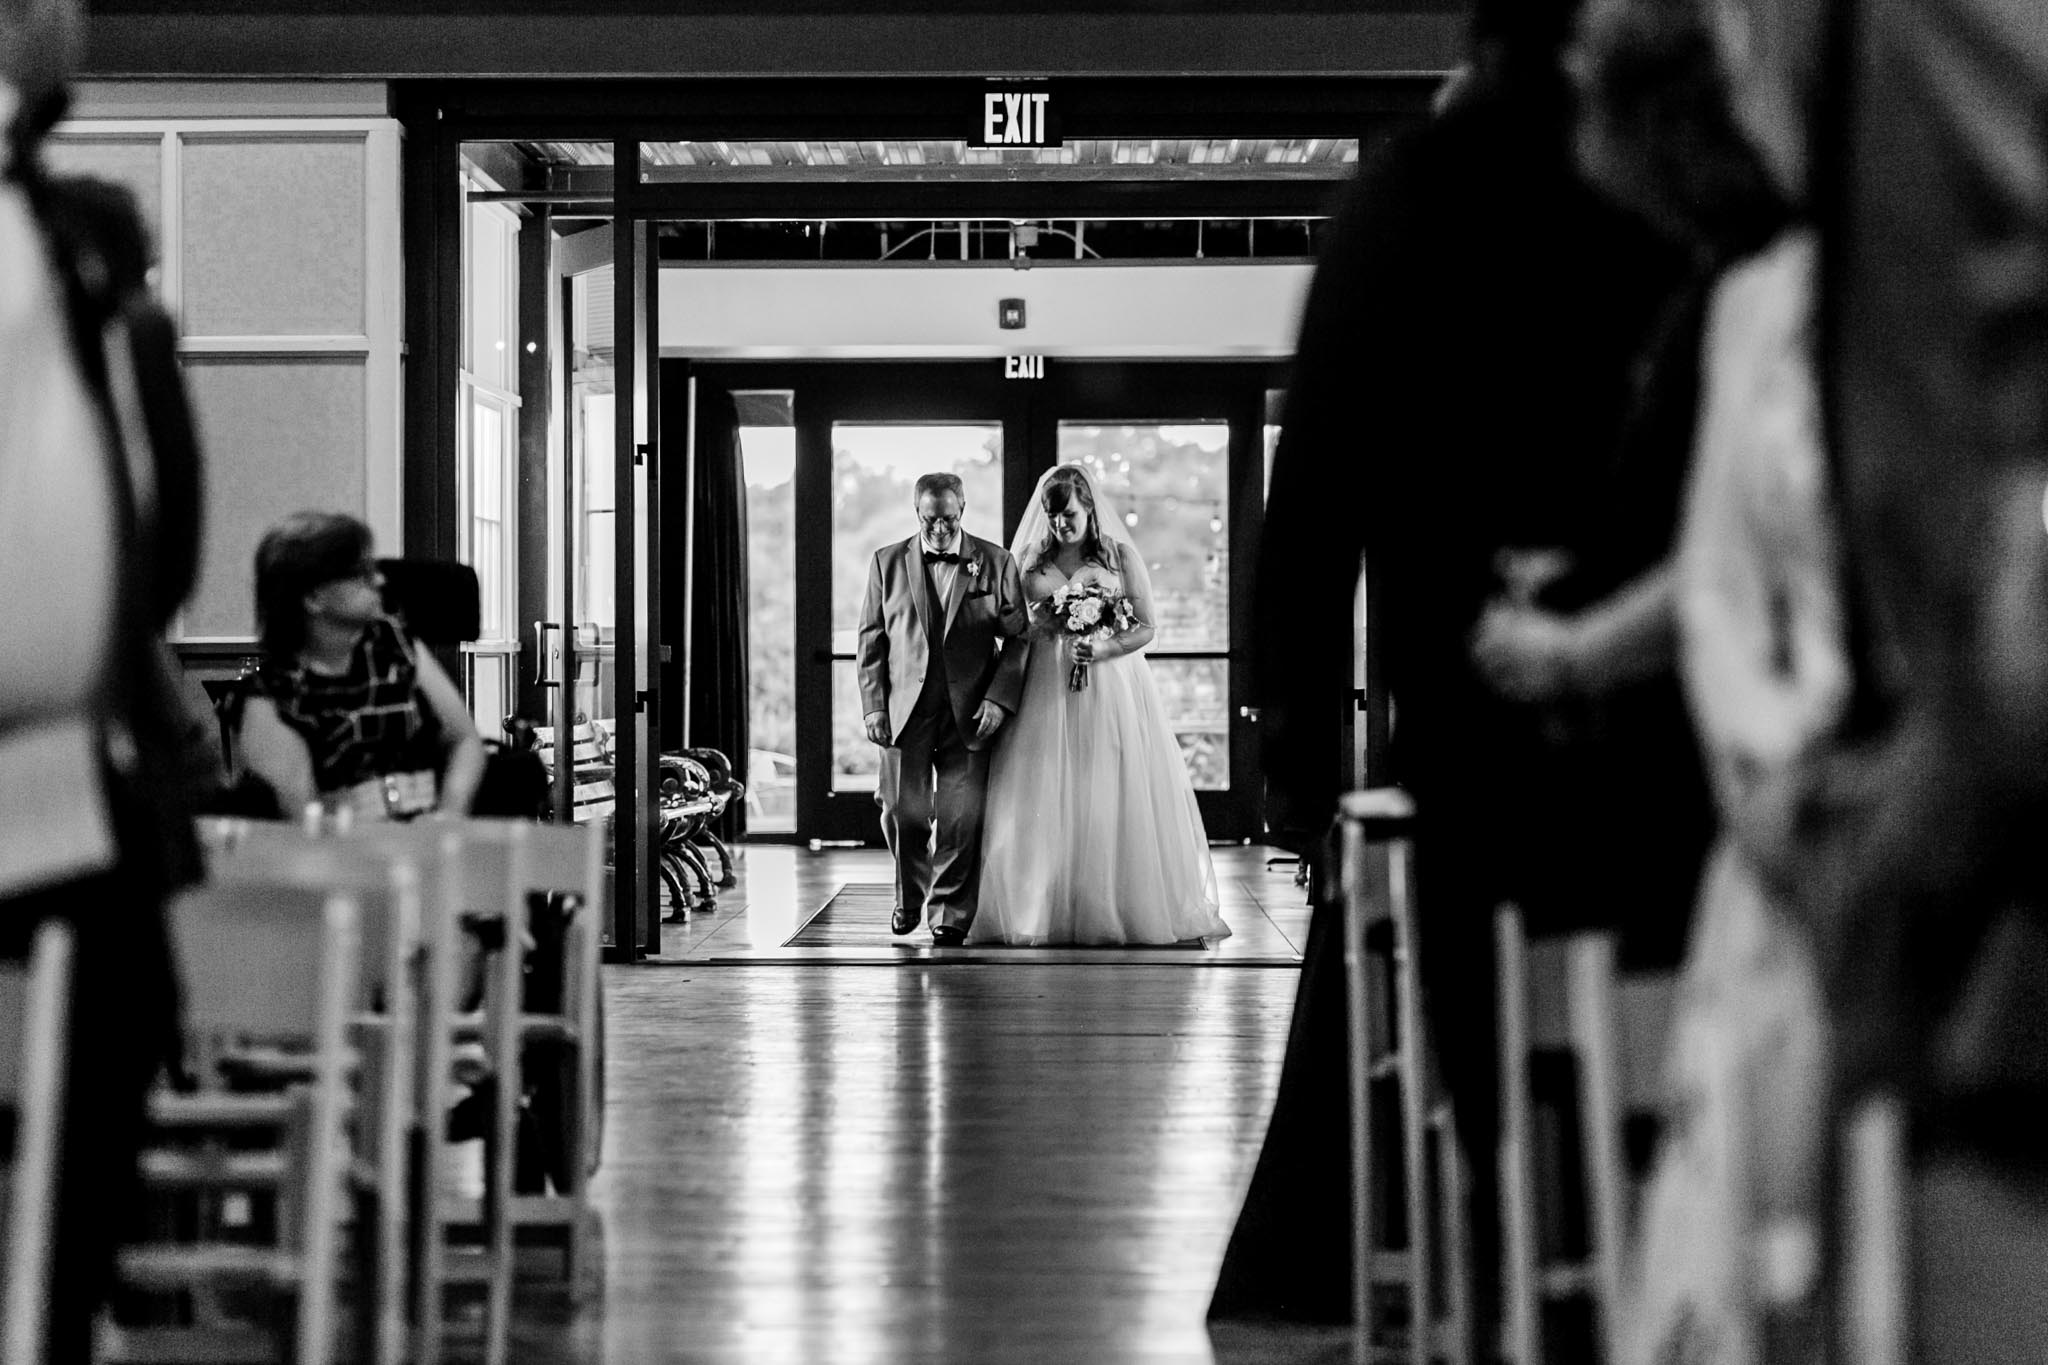 Haw River Ballroom Wedding | Durham Photographer | By G. Lin Photography | Black and white photo of bride with father entering